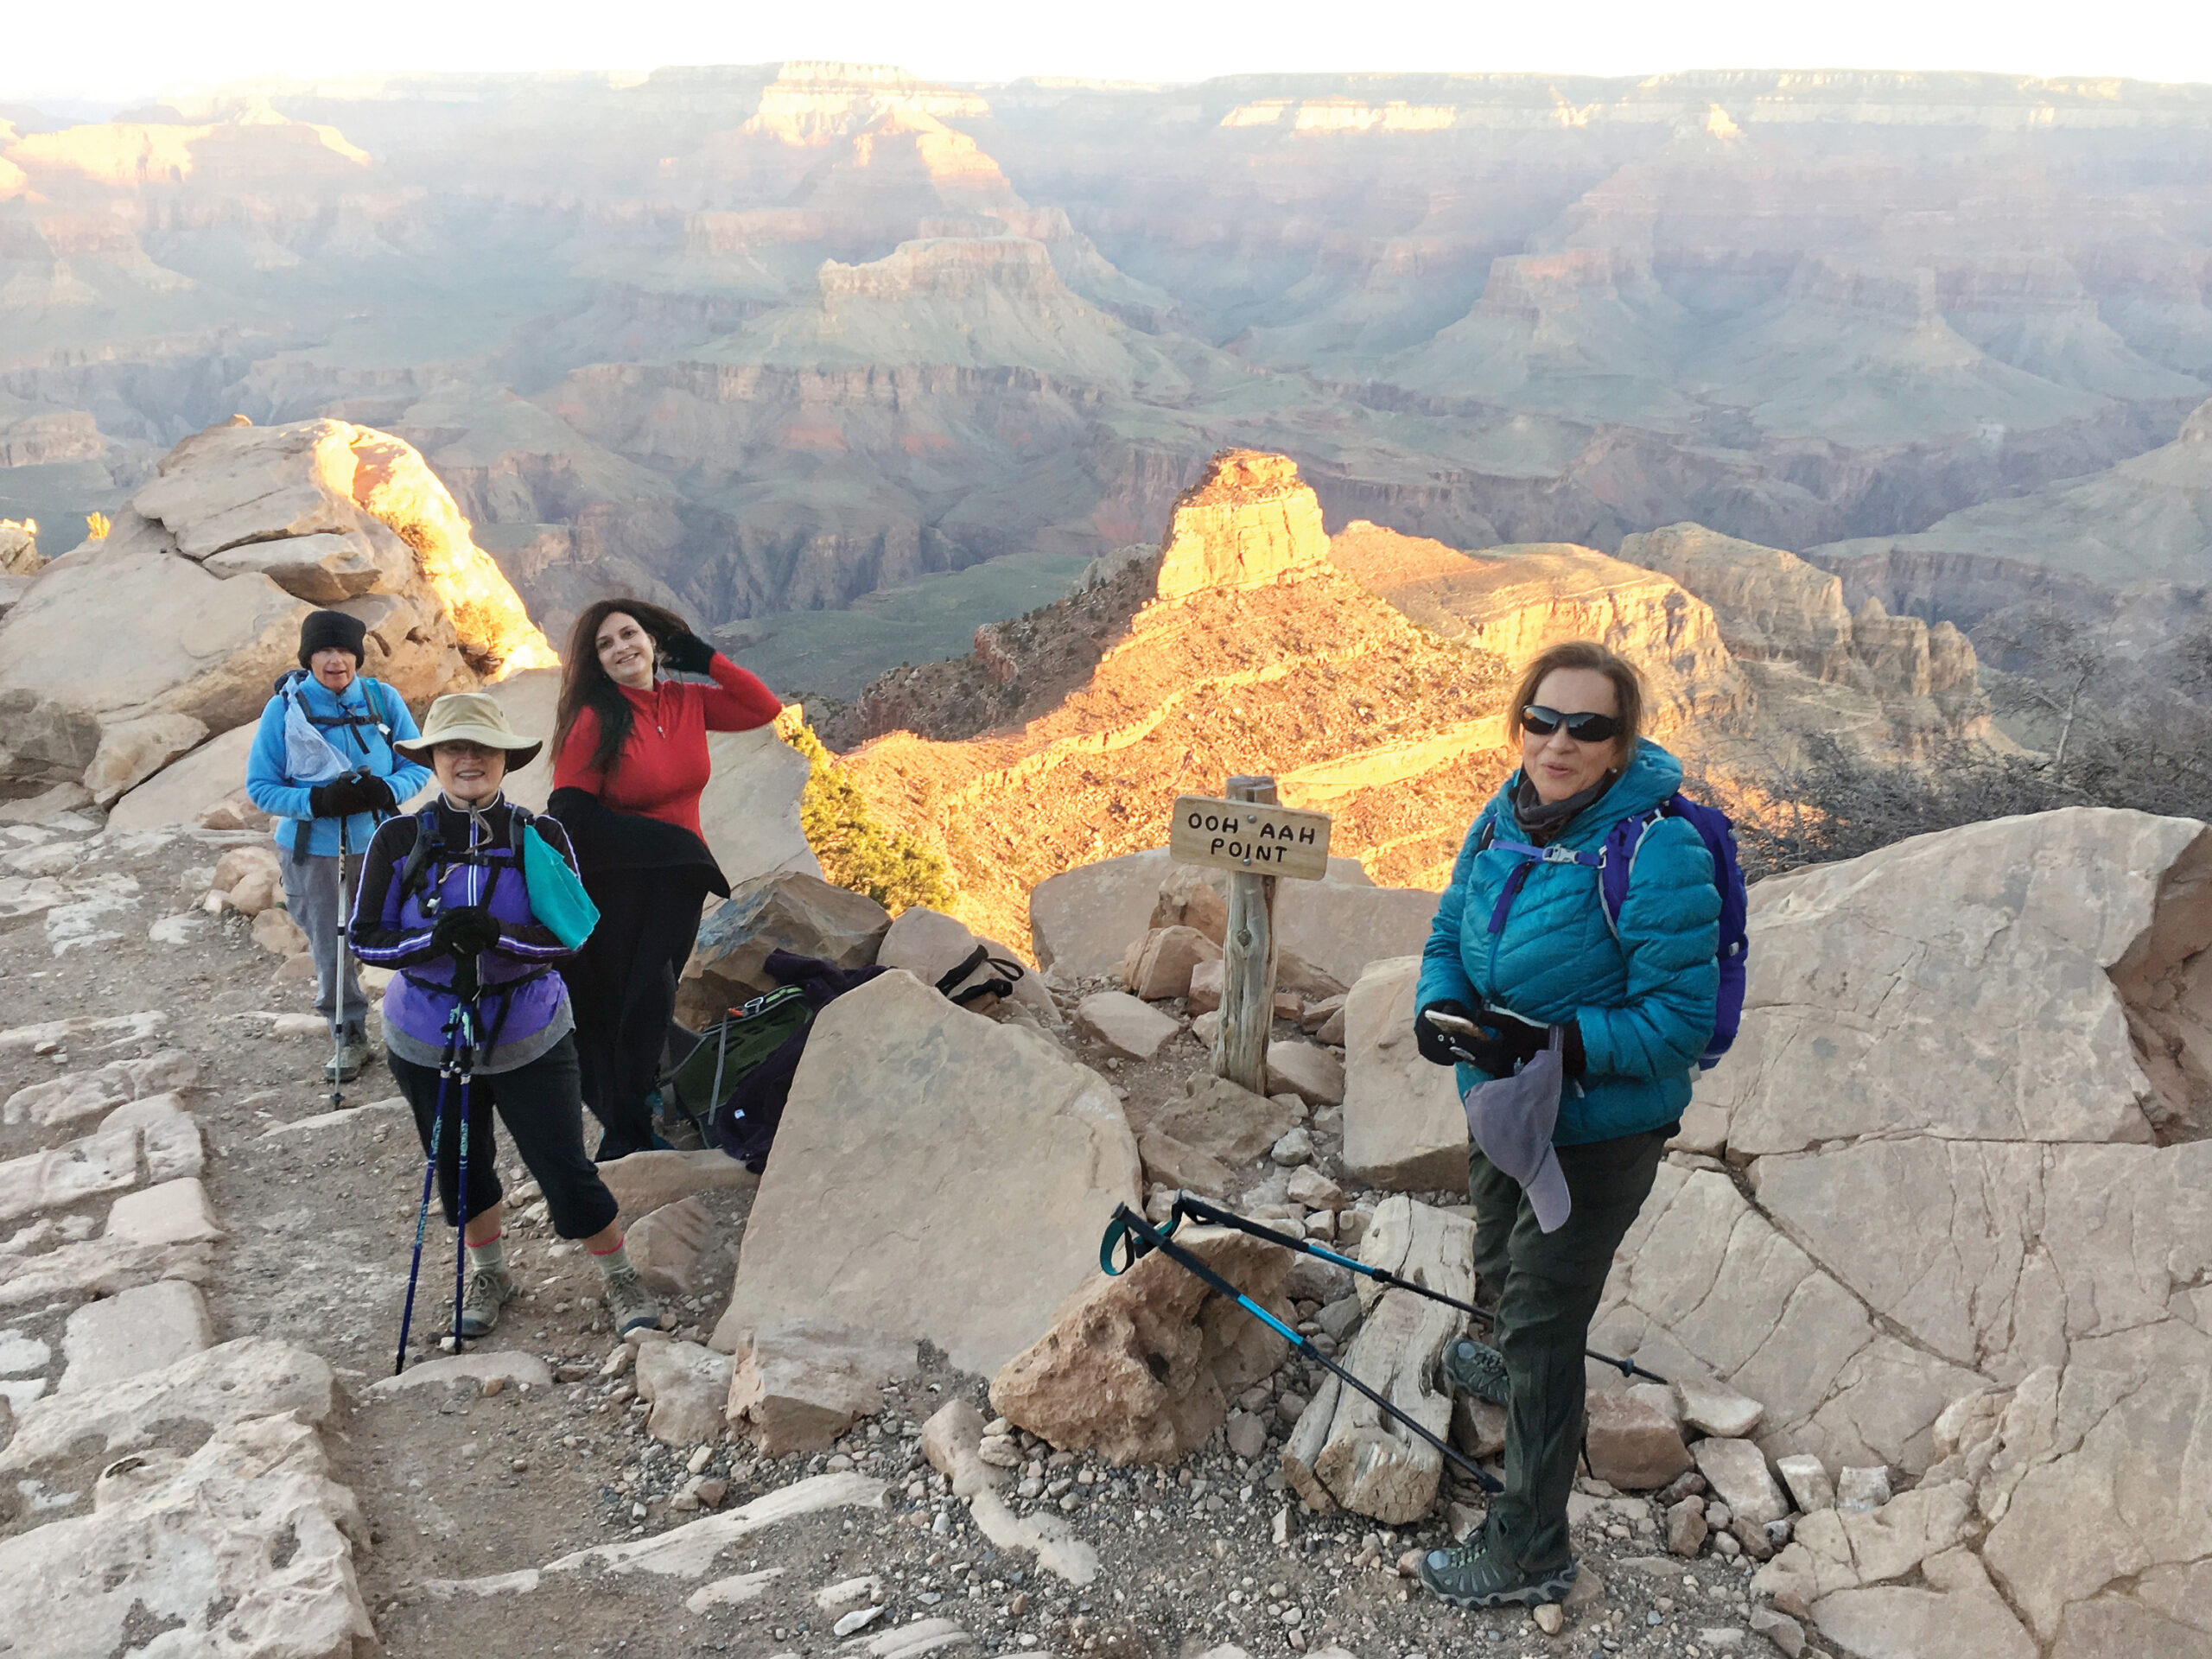 Ooh Aah Point at the Grand Canyon. Pictured (left to right) are club members DeEtte Faith, Tracy Nilsen, Melanie Hudson, and Rocio Smith. (Photo by Warren Wasescha)